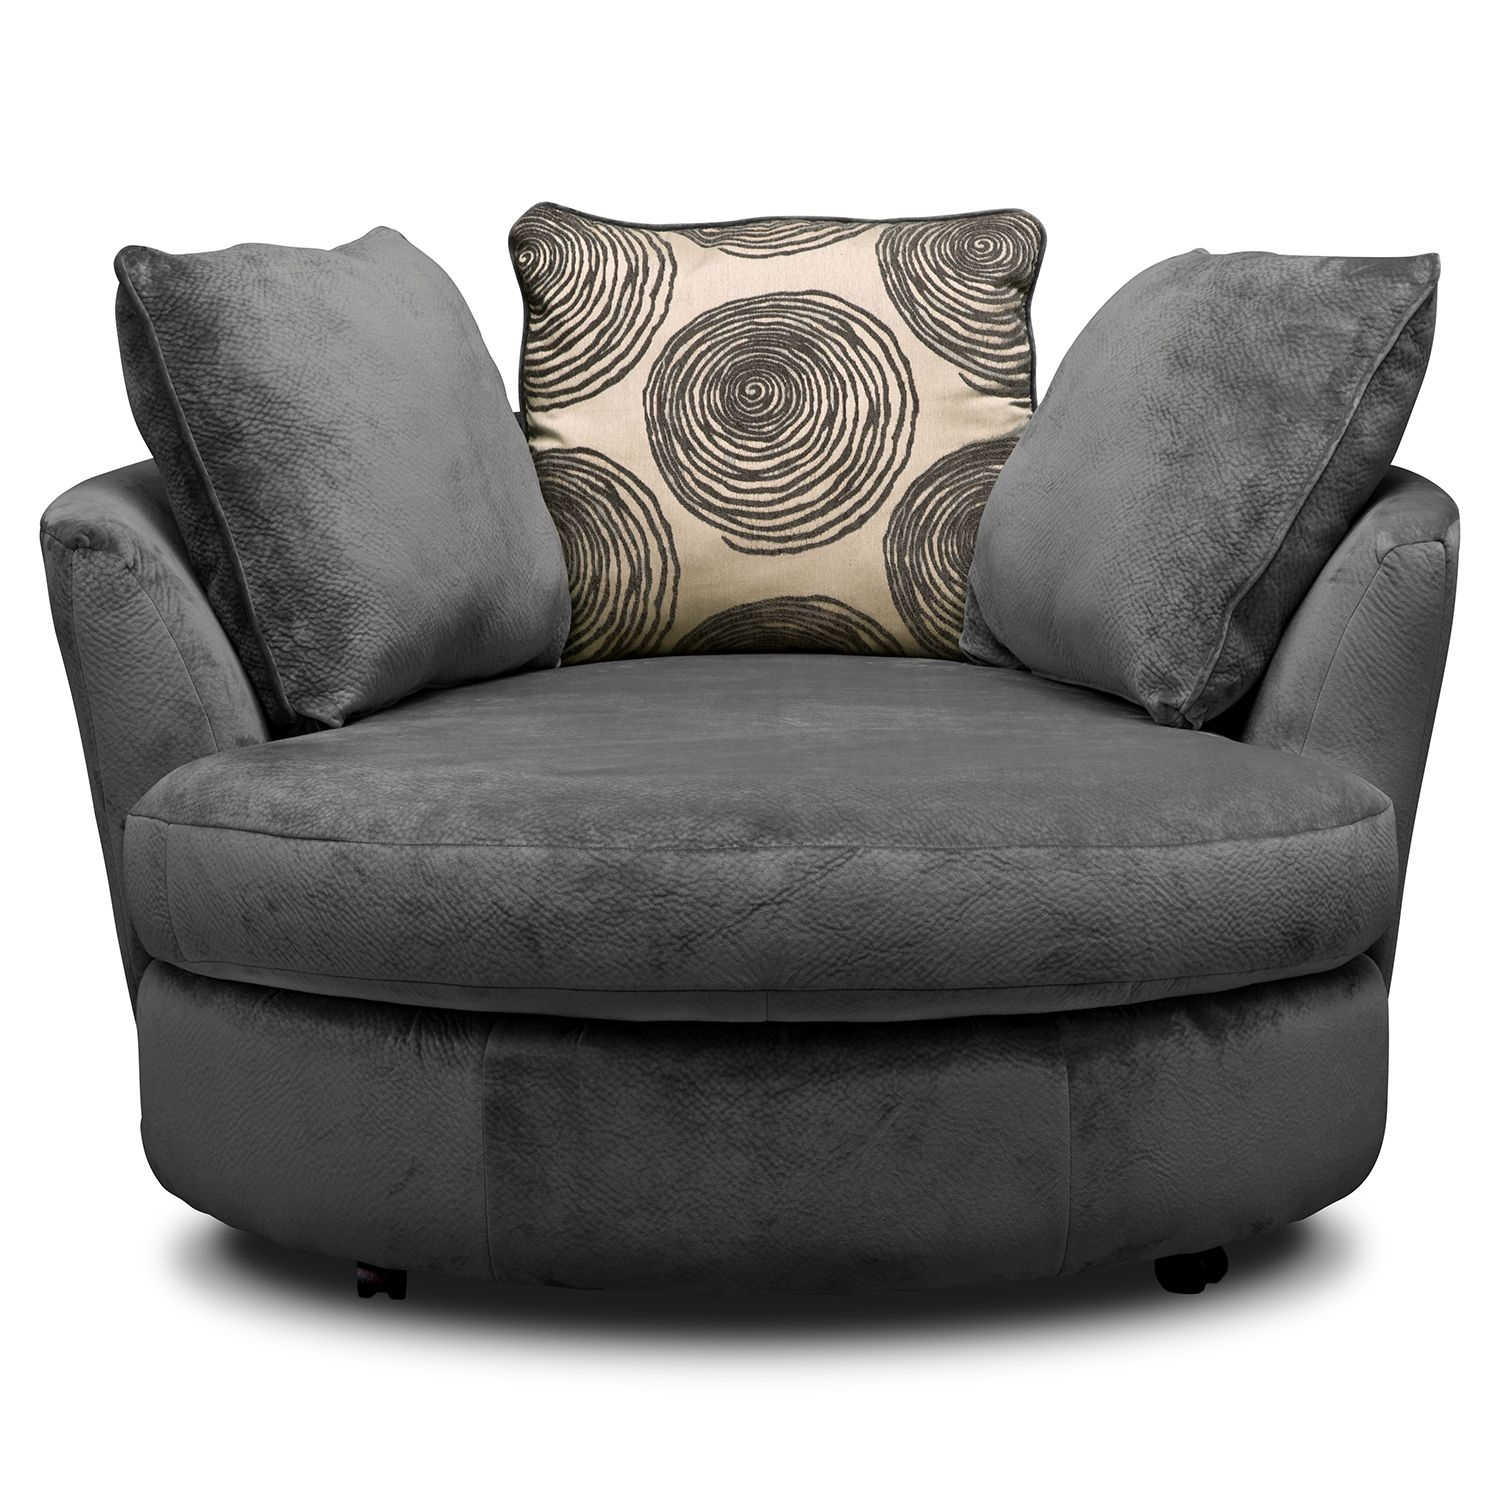 Cuddle Circle Lounge Chair Home Chair Designs For Circular Sofa Chairs (Image 2 of 15)